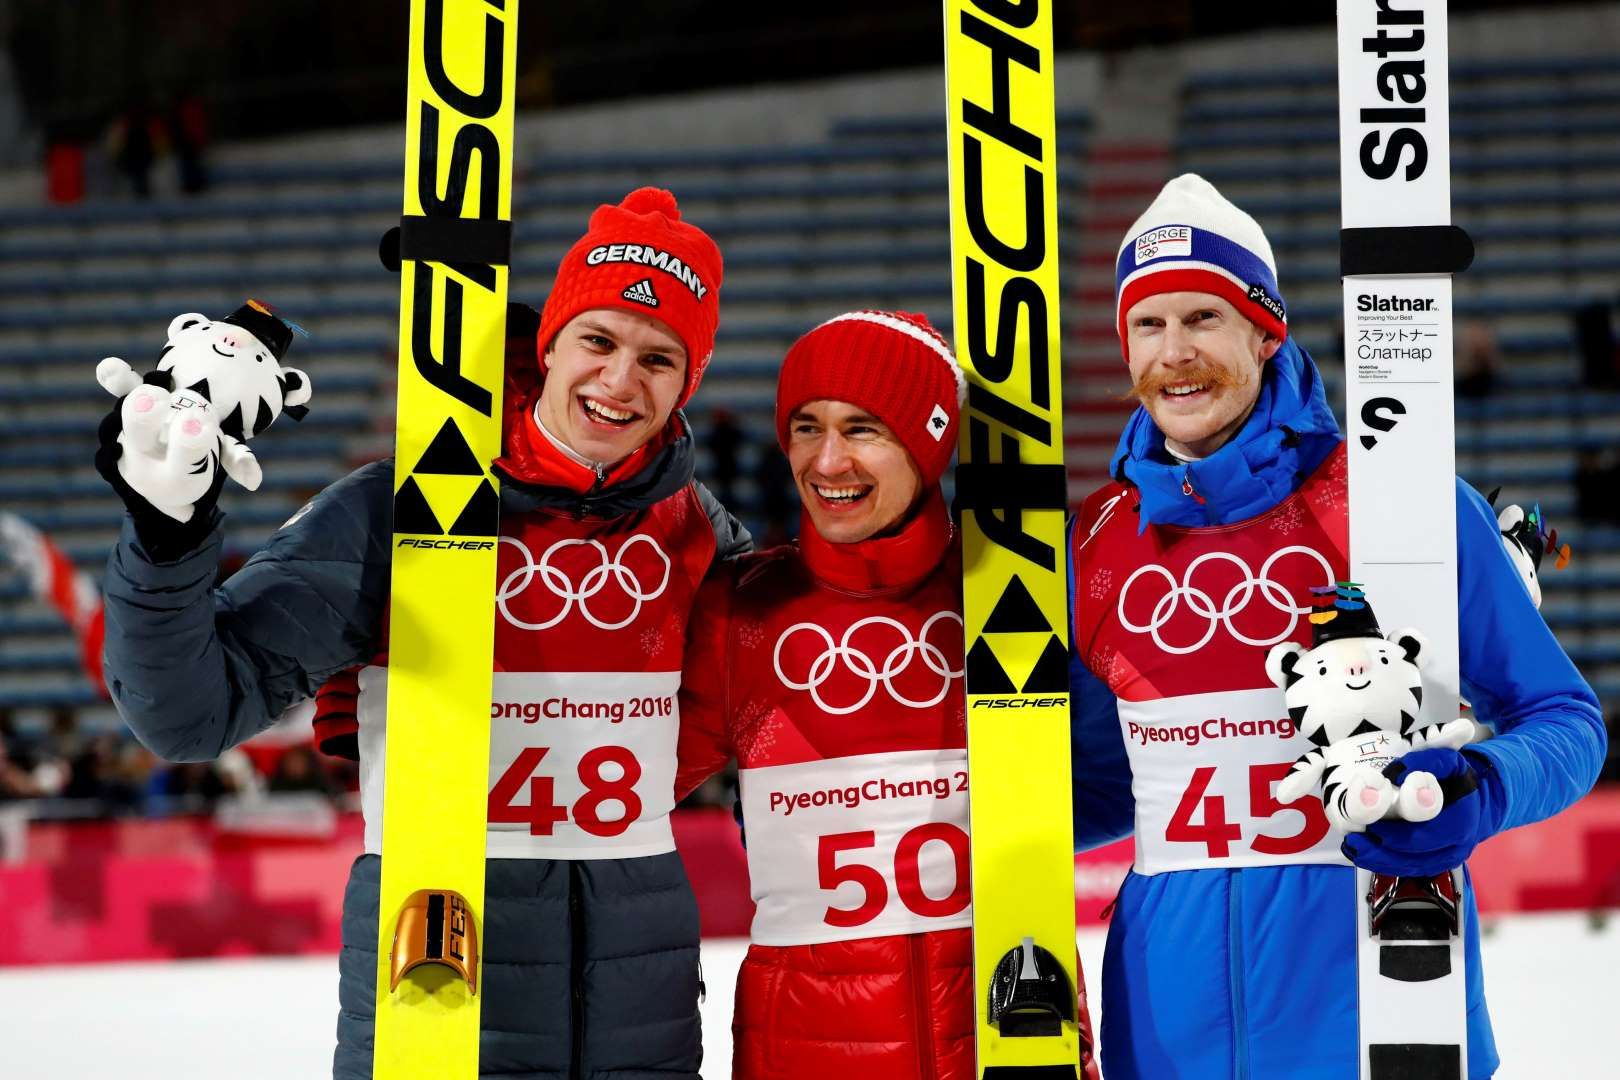 2018 Winter Olympics Gold Medal Winner Kamil Stoch Of Poland Is Flanked By Silver Medal Winner Andreas Wel Winter Olympics 2018 Winter Olympics Ski Jumping